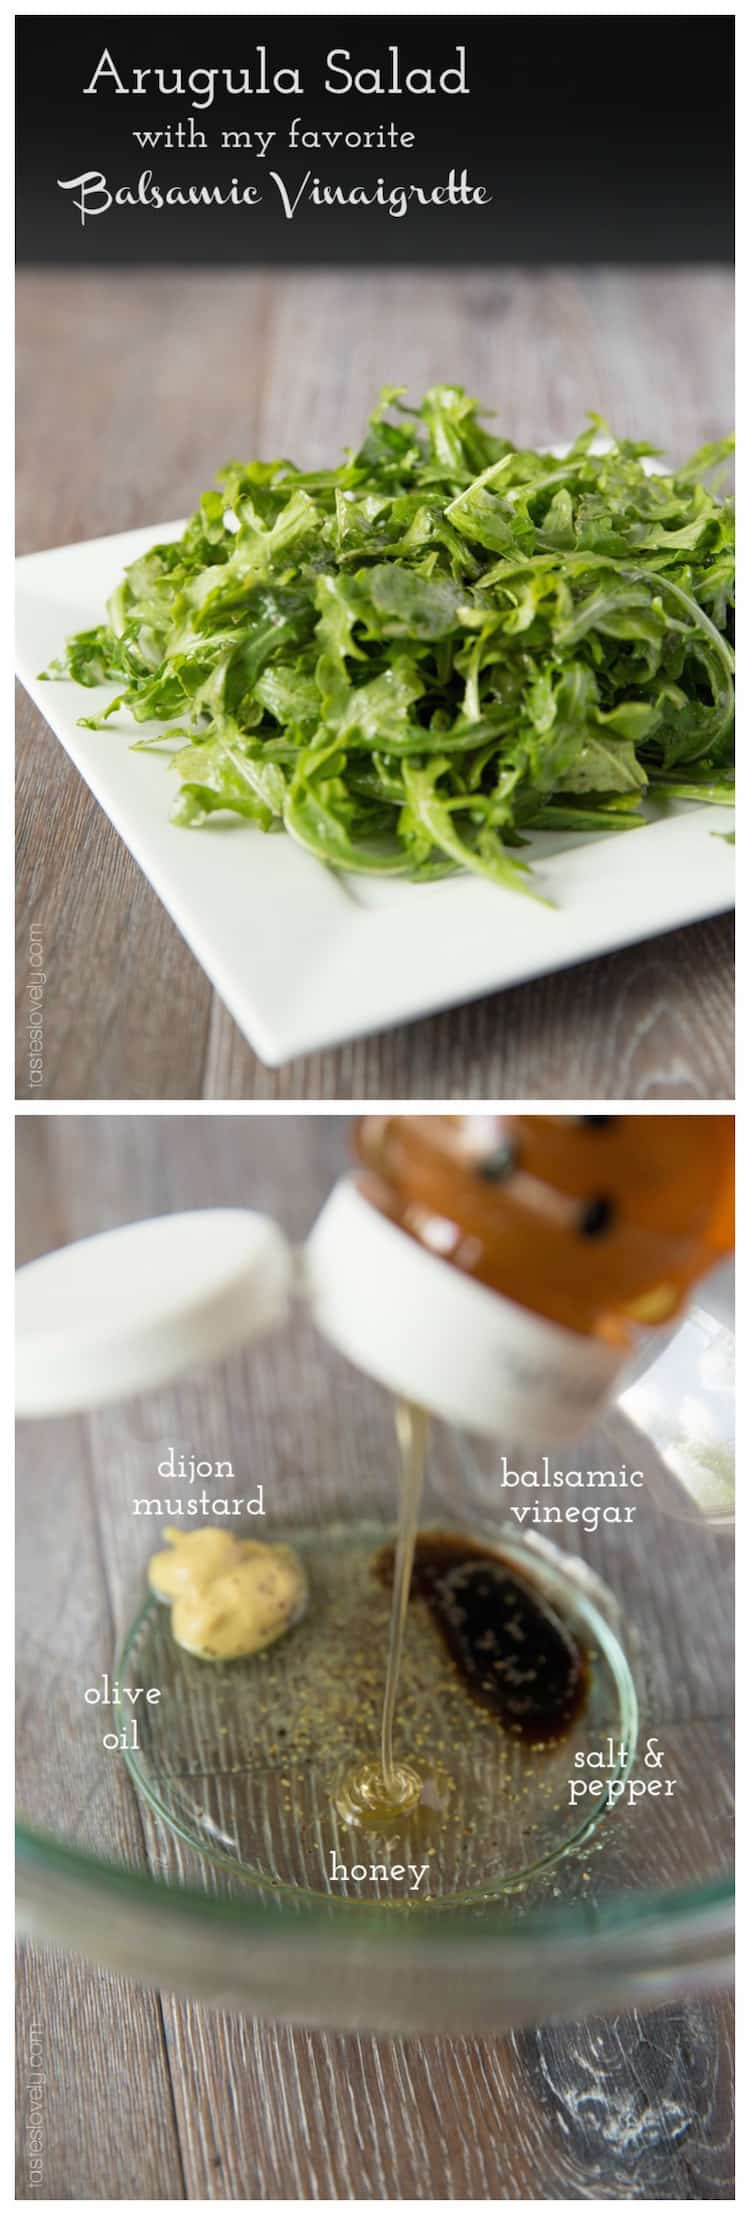 Arugula Salad with my favorite Balsamic Vinaigrette